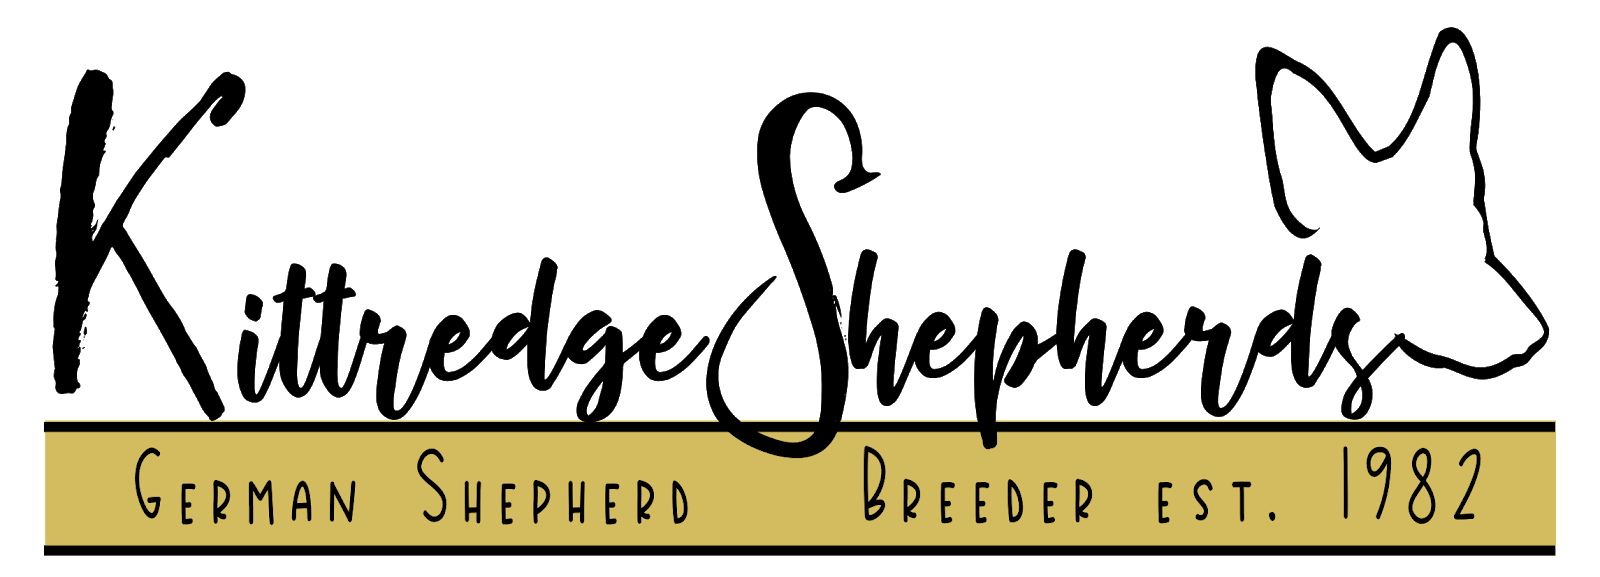 Kittredge Shepherds